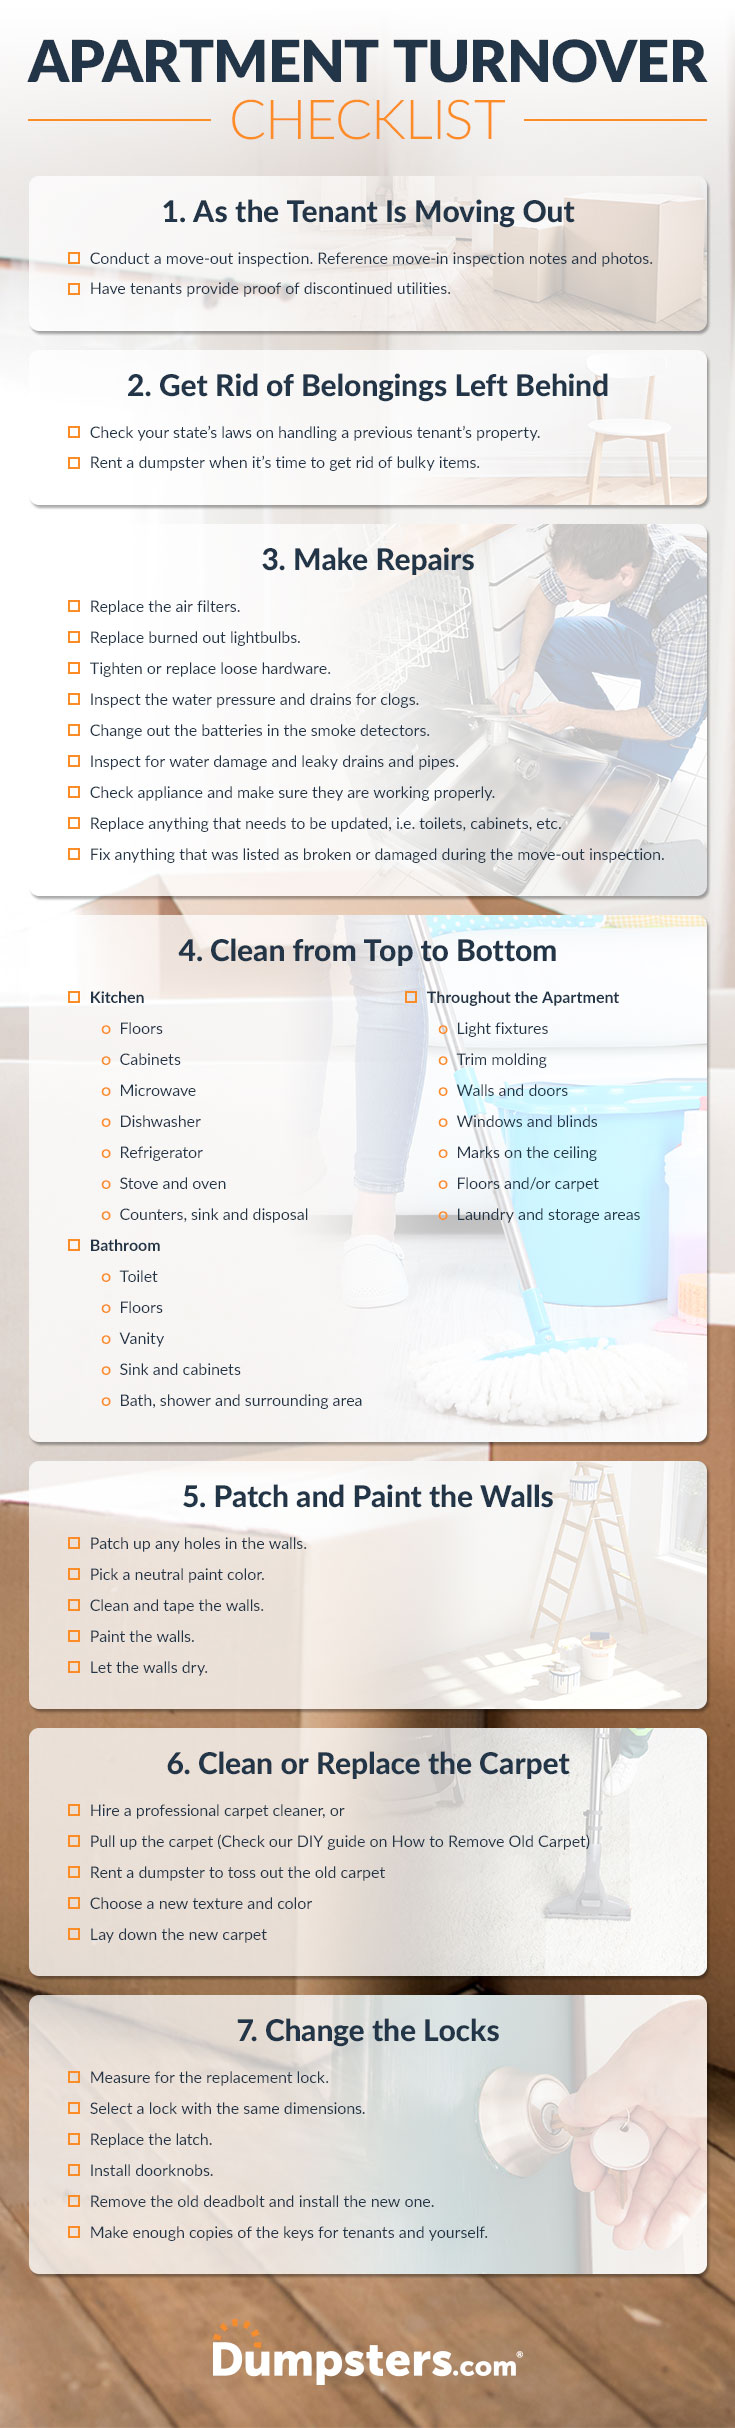 Apartment Turnover Cleaning Checklist for Landlords ...